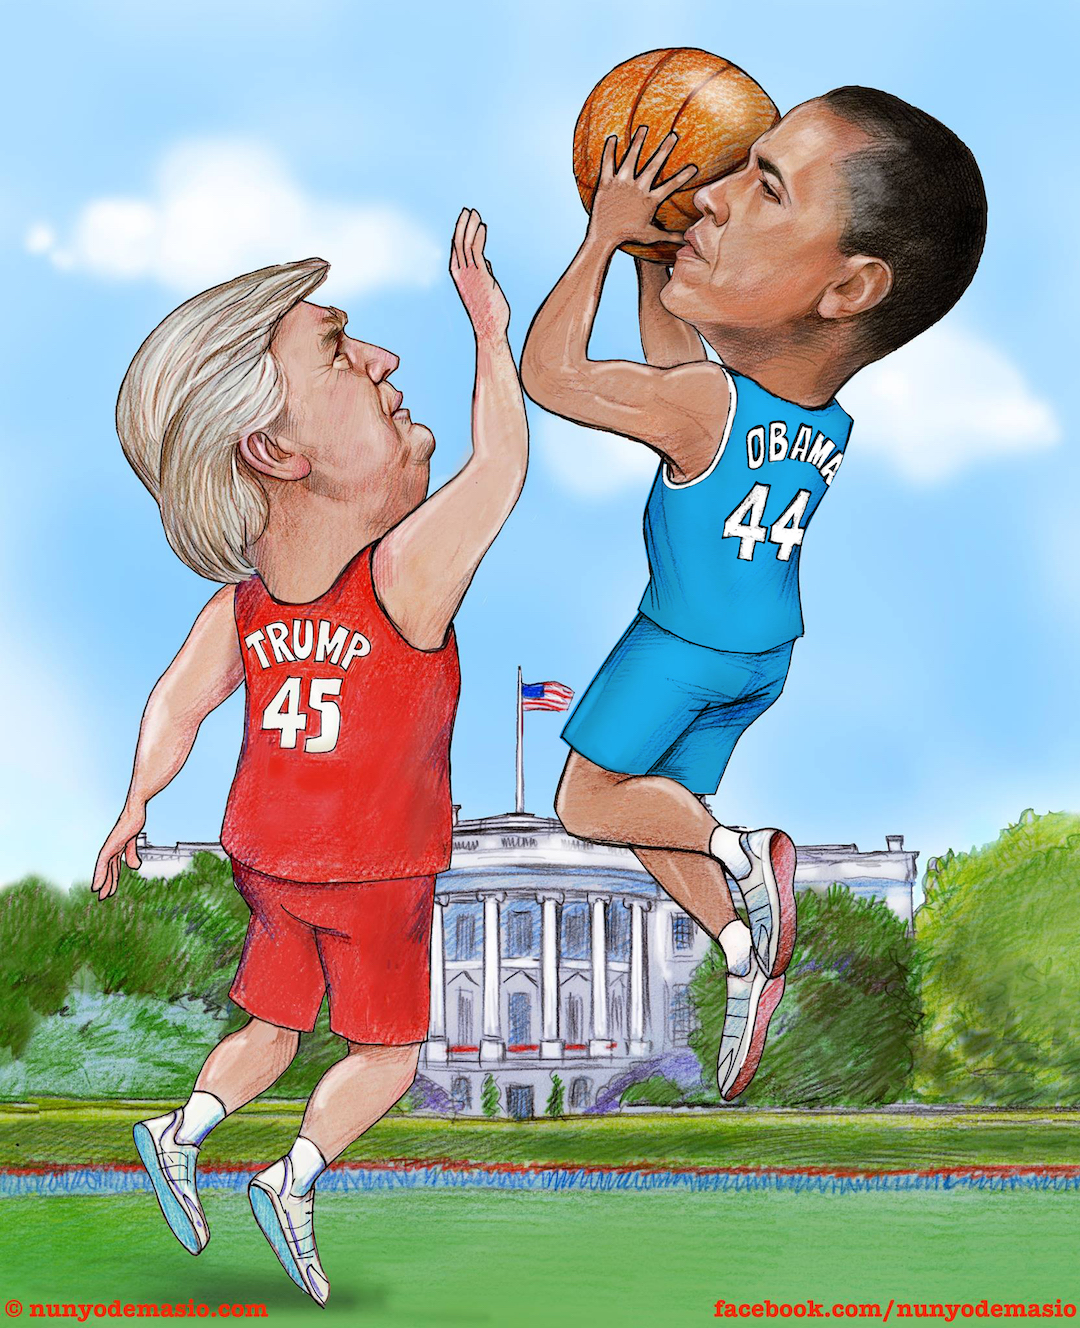 In this Twilight Zone era, perhaps a basketball contest between #44 and #45 could determine whose legacy prevails. Who has the deeper game? Place your bets!